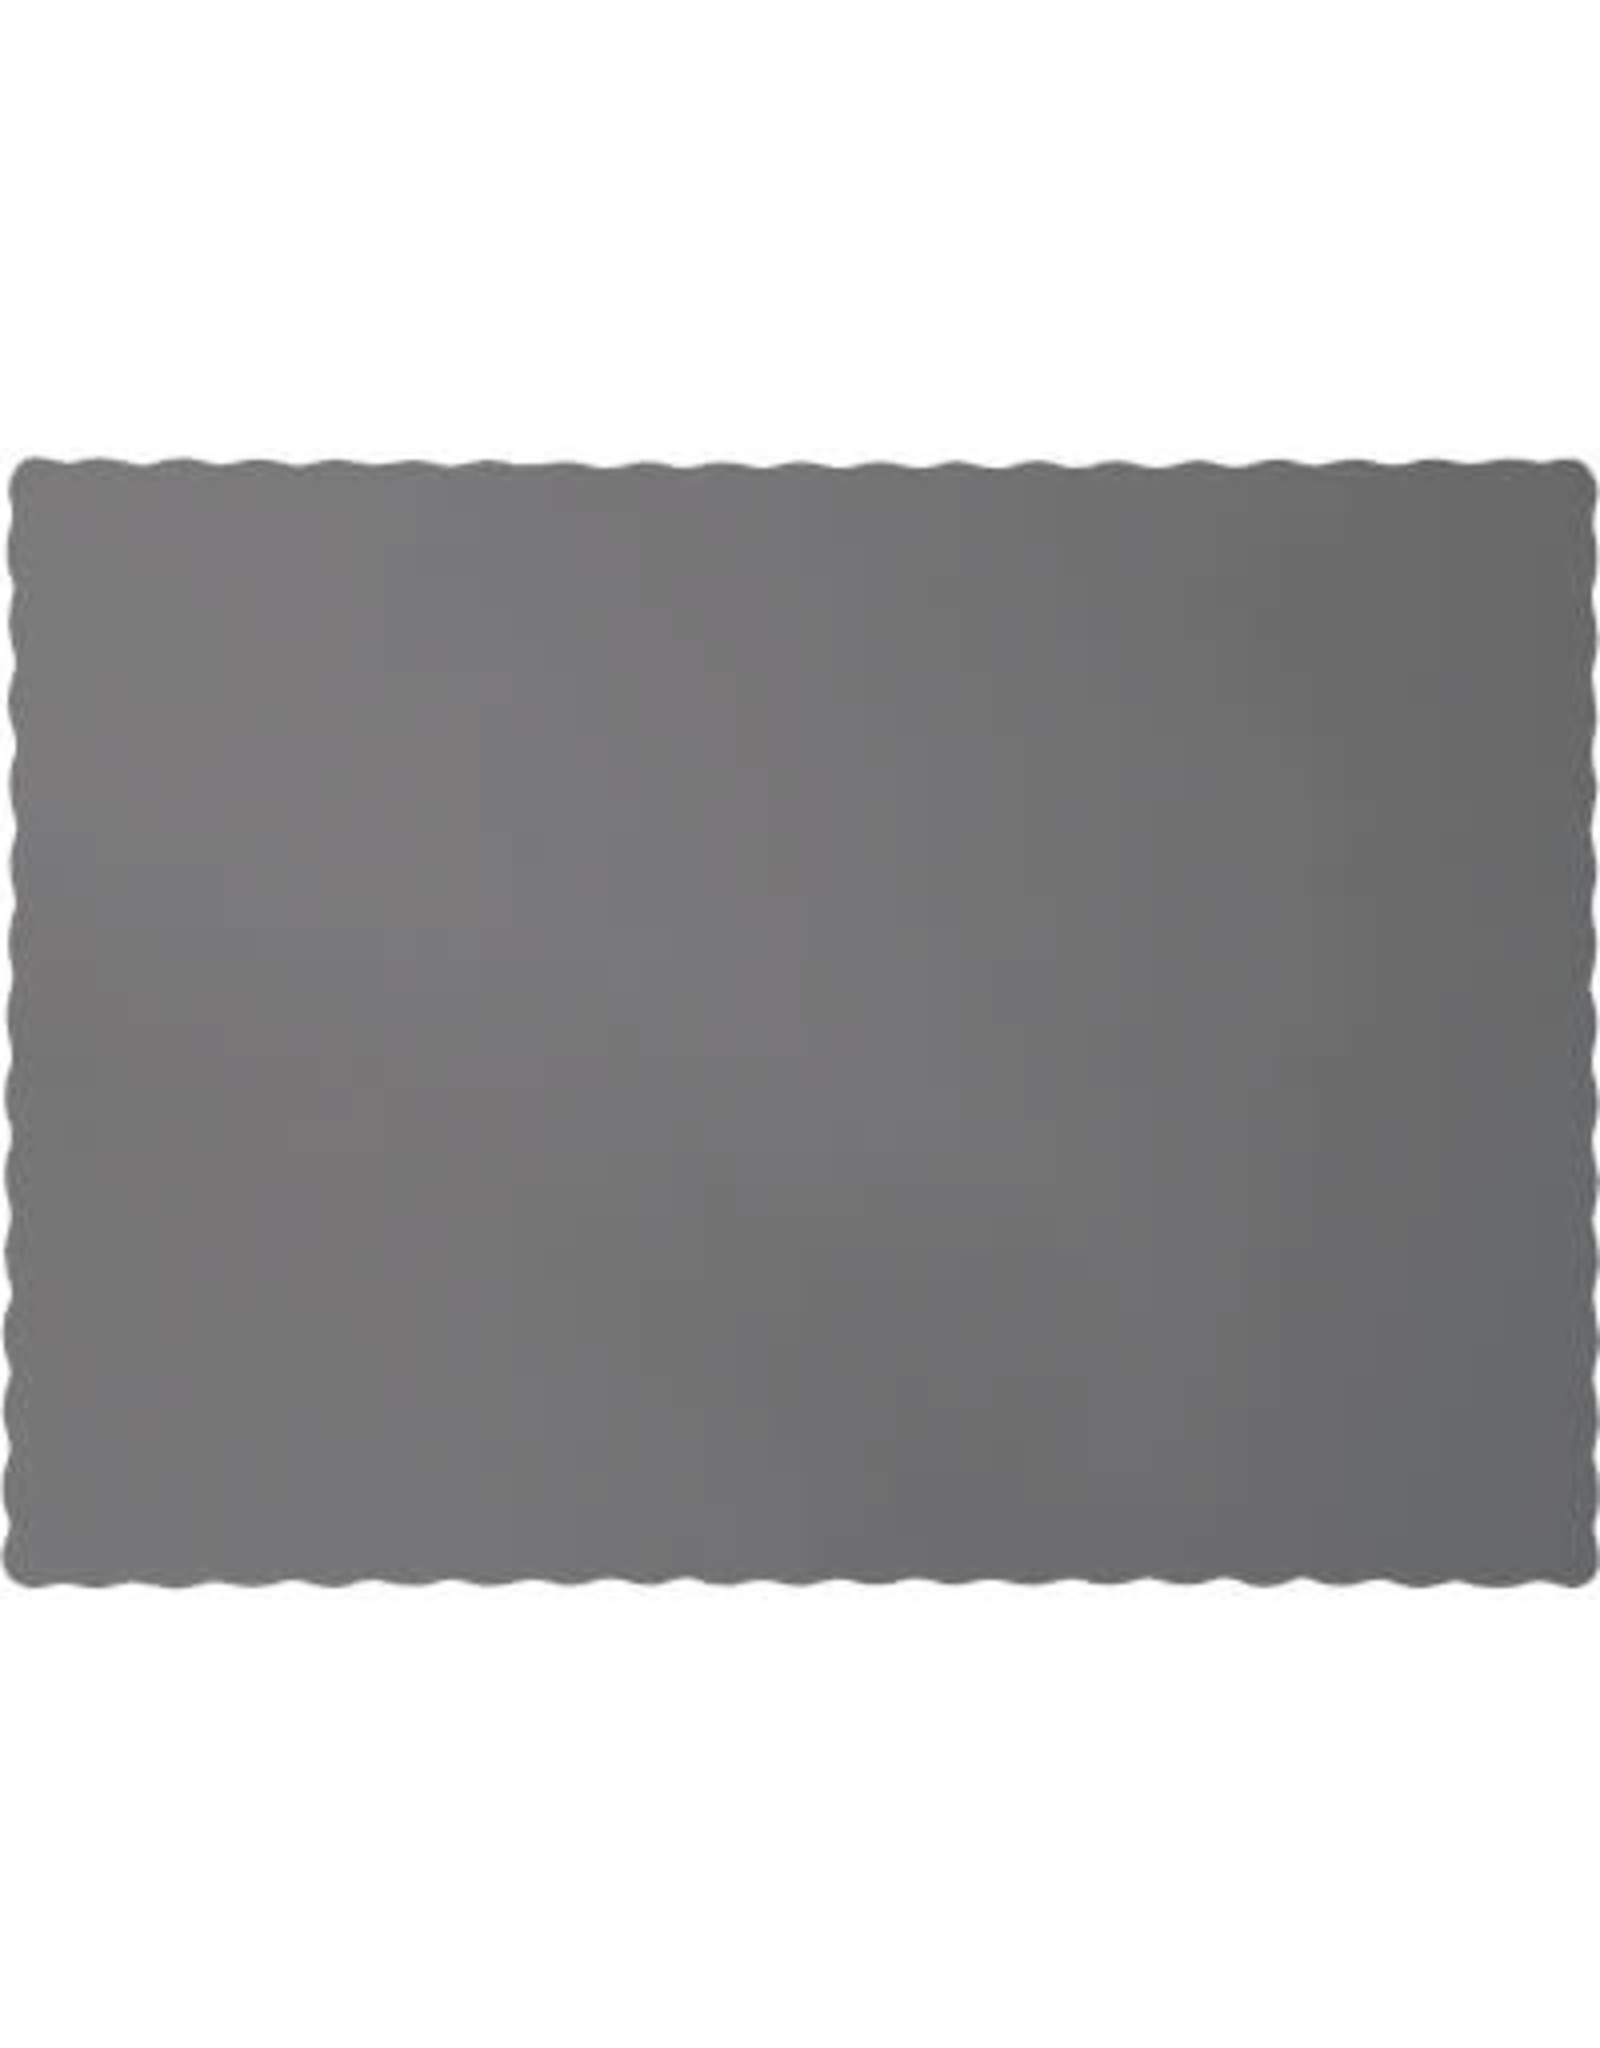 Touch of Color GLAMOUR GRAY PLACEMATS